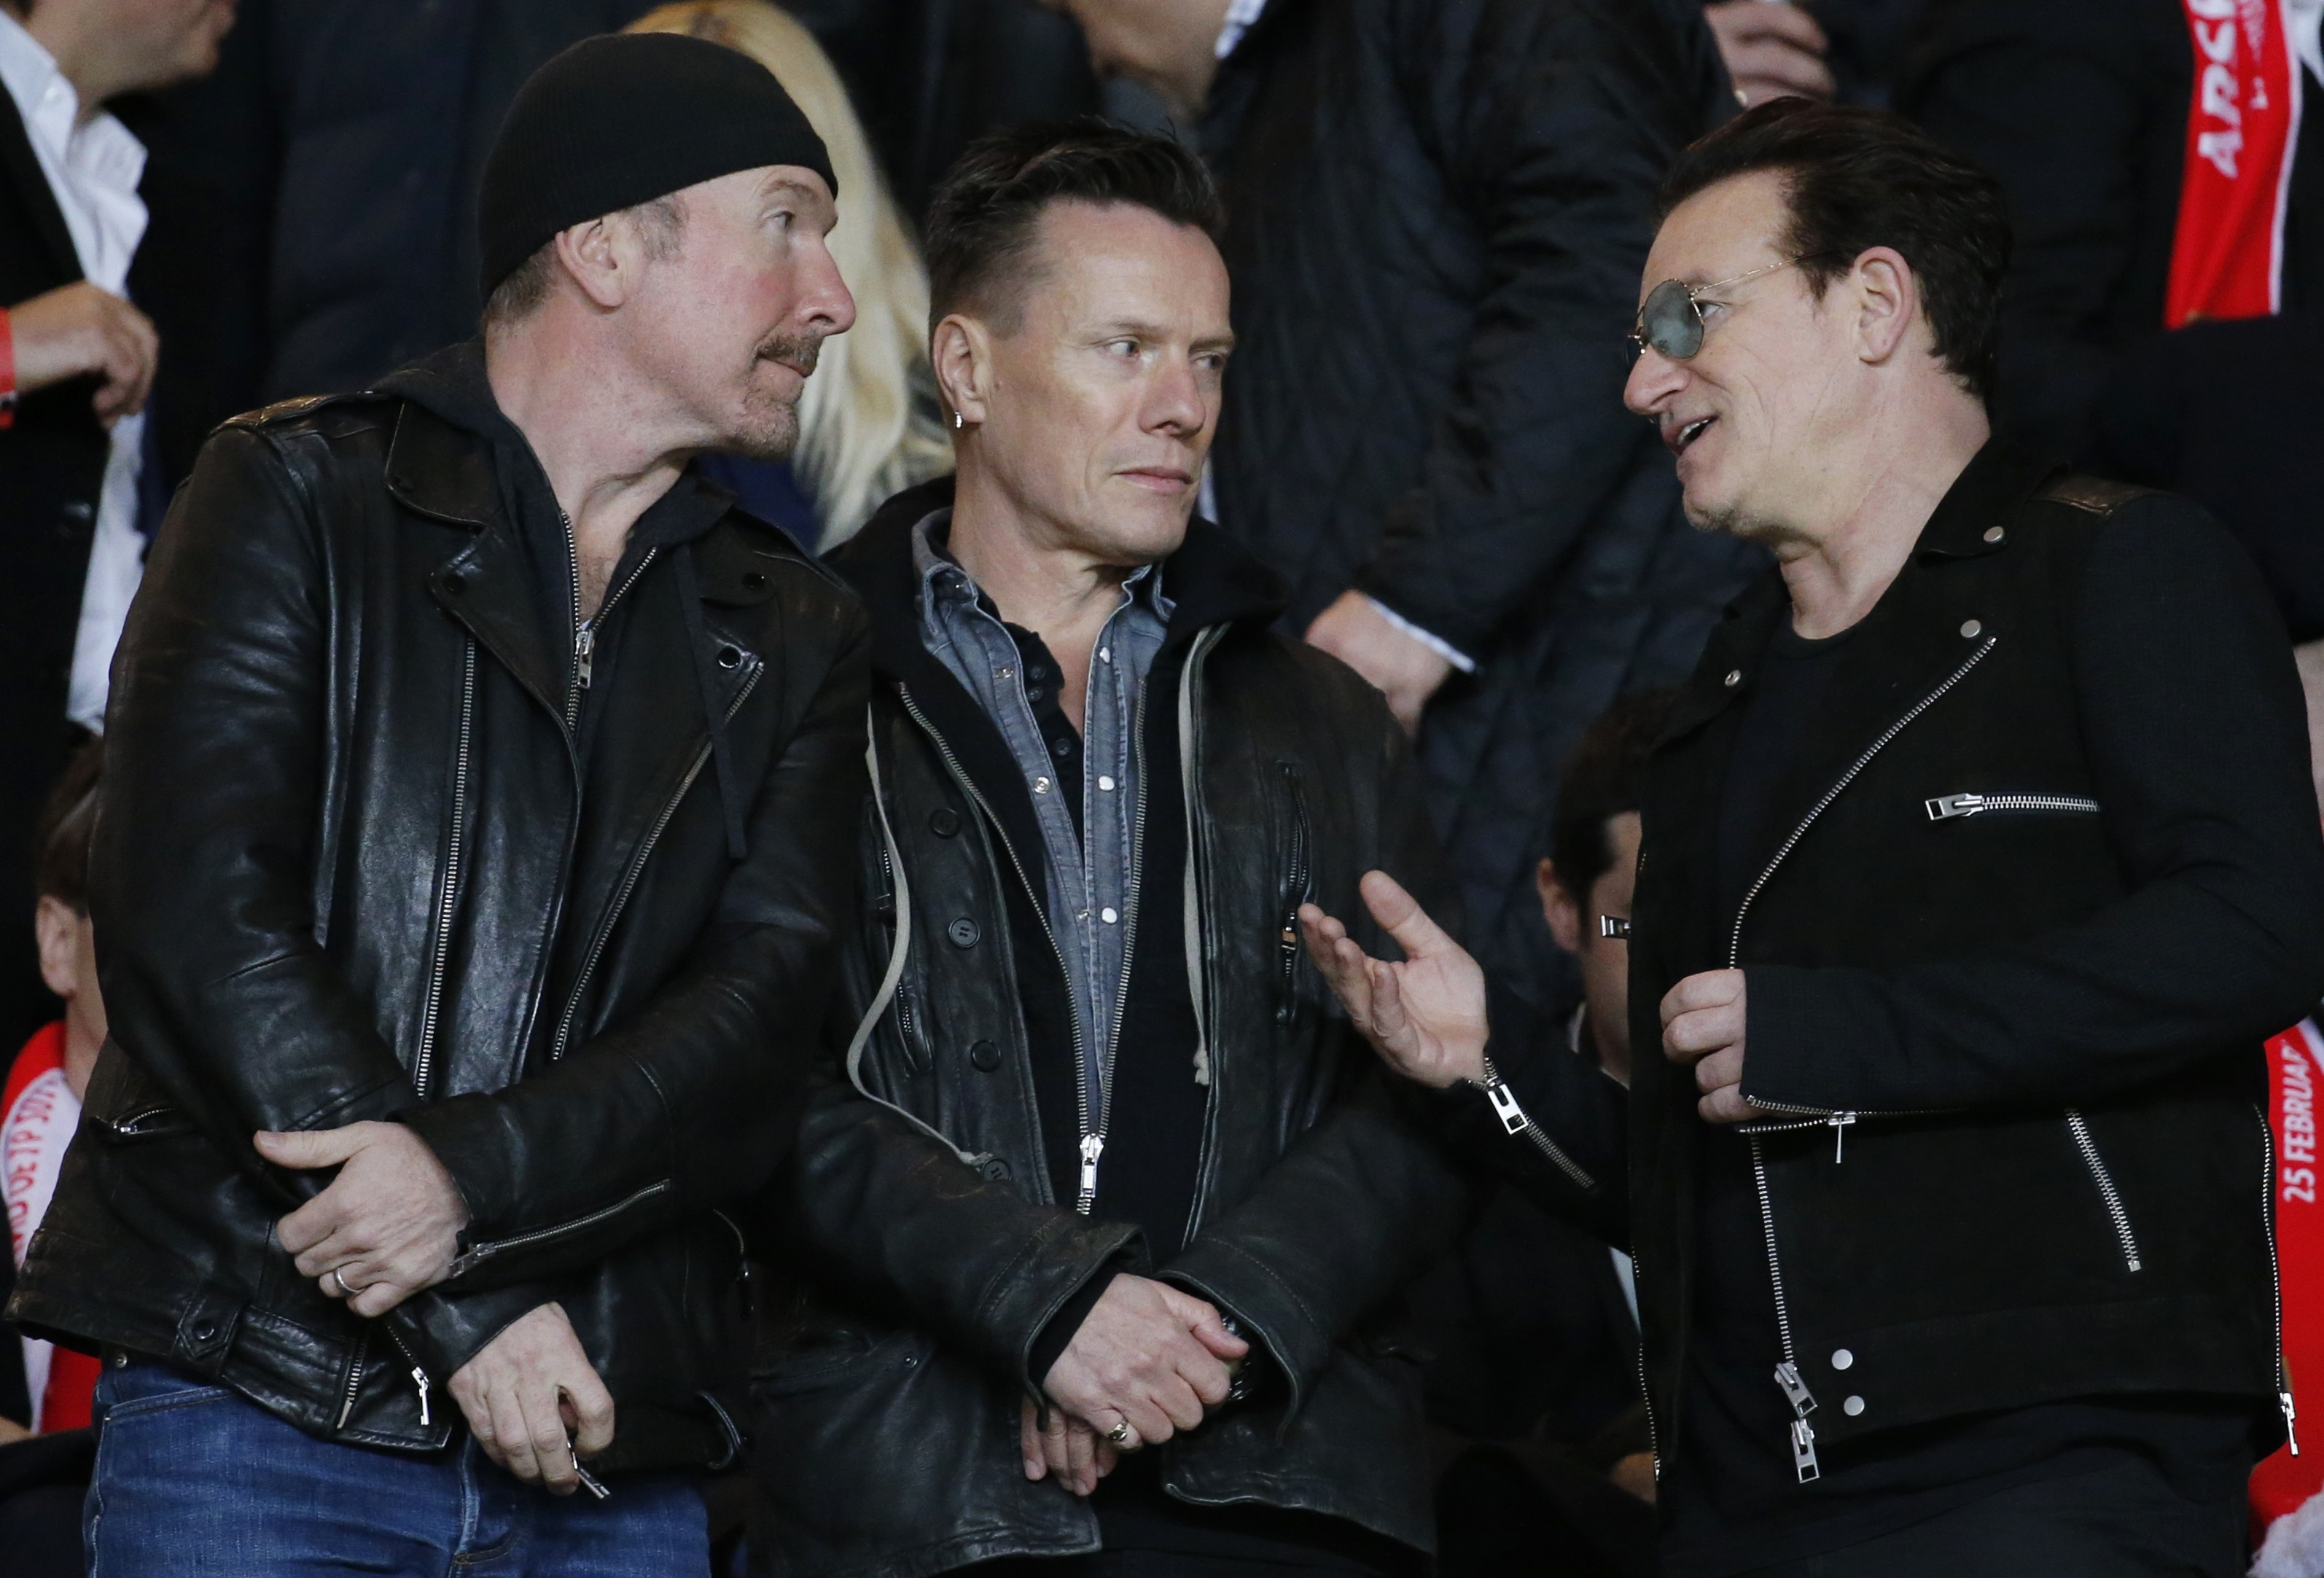 The Irish rock band U2 were among the crowd as Arsenal tumbled out.